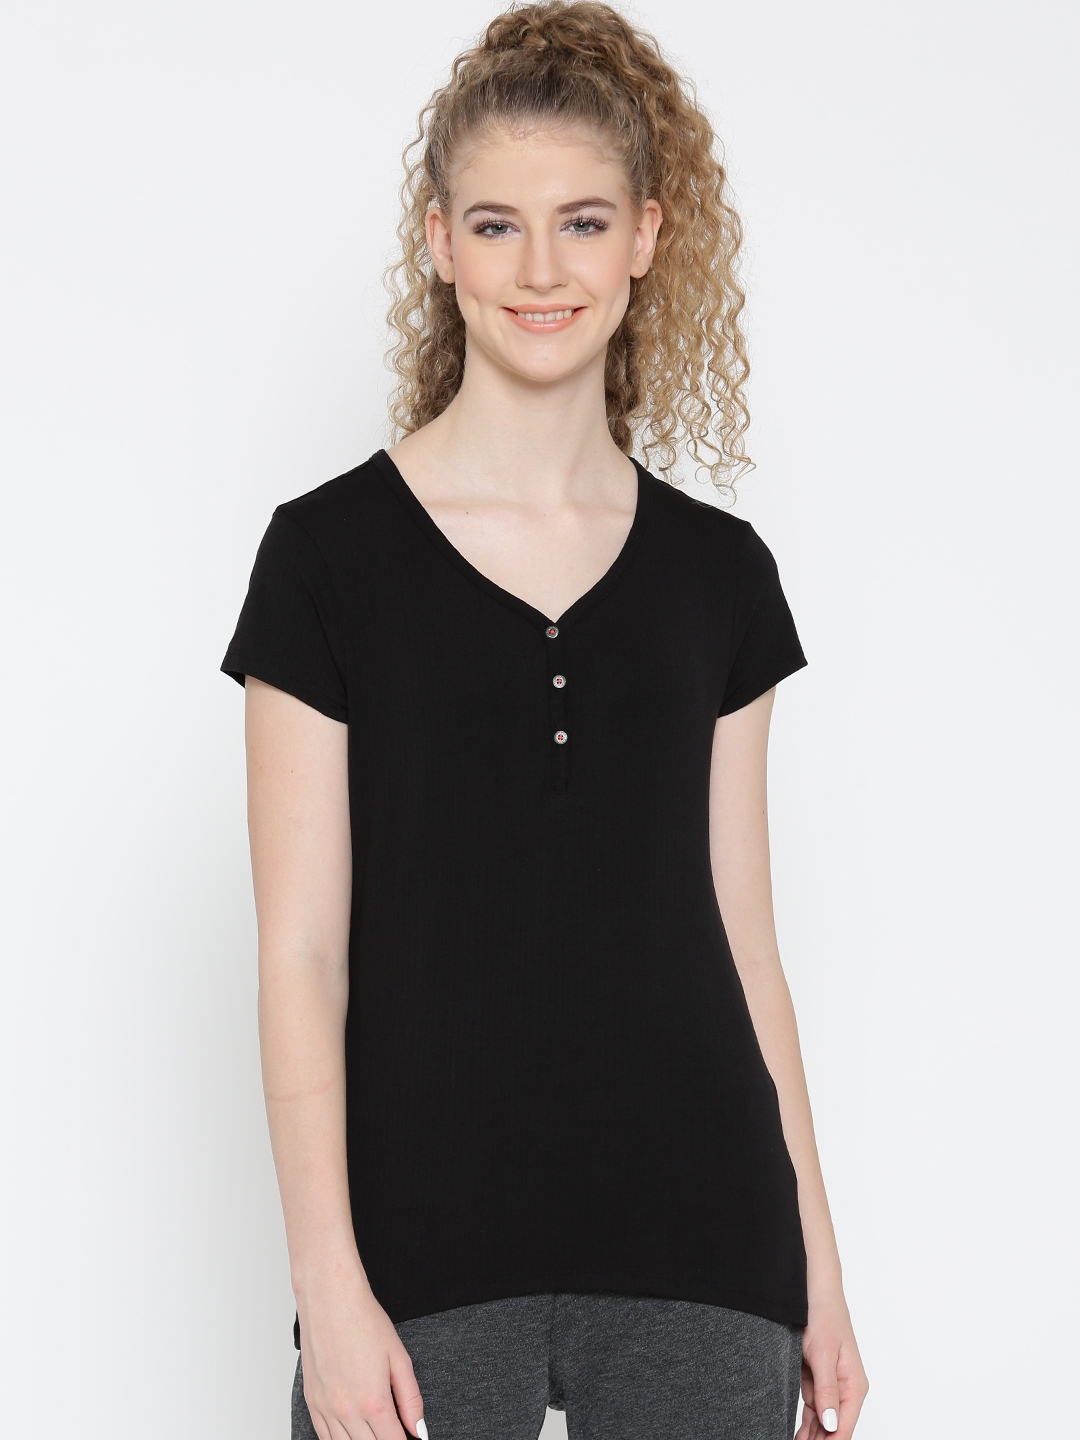 eb8efdc09939c Buy Jockey Women Black Solid V Neck T Shirt - Tshirts for Women